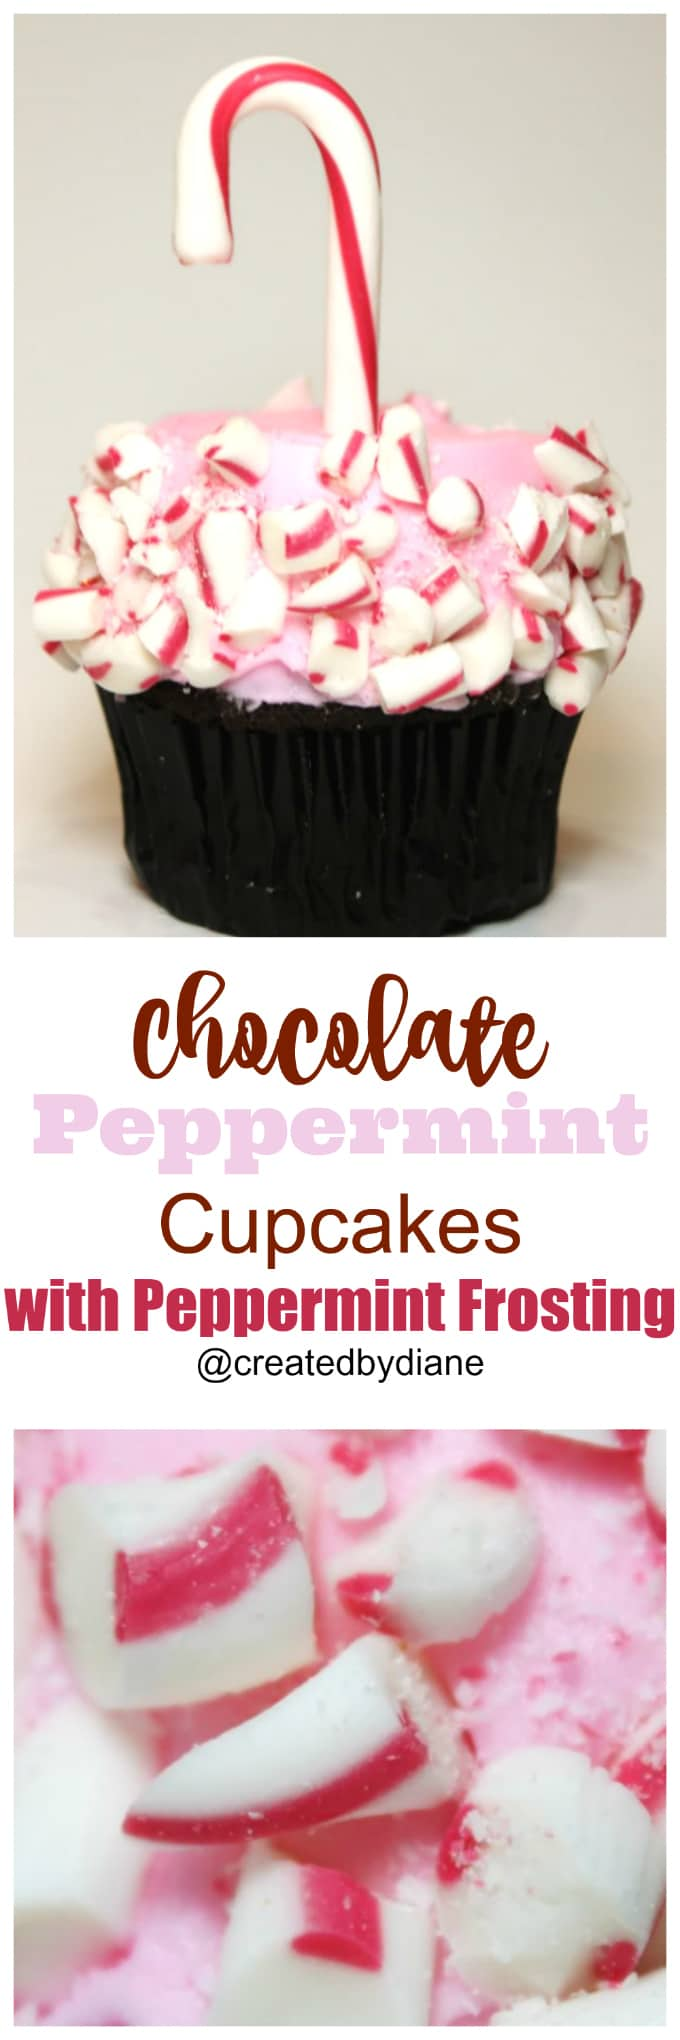 chocolate-peppermint-cupcakes-with-peppermint-frosting-and-candy-canes-createdbydiane